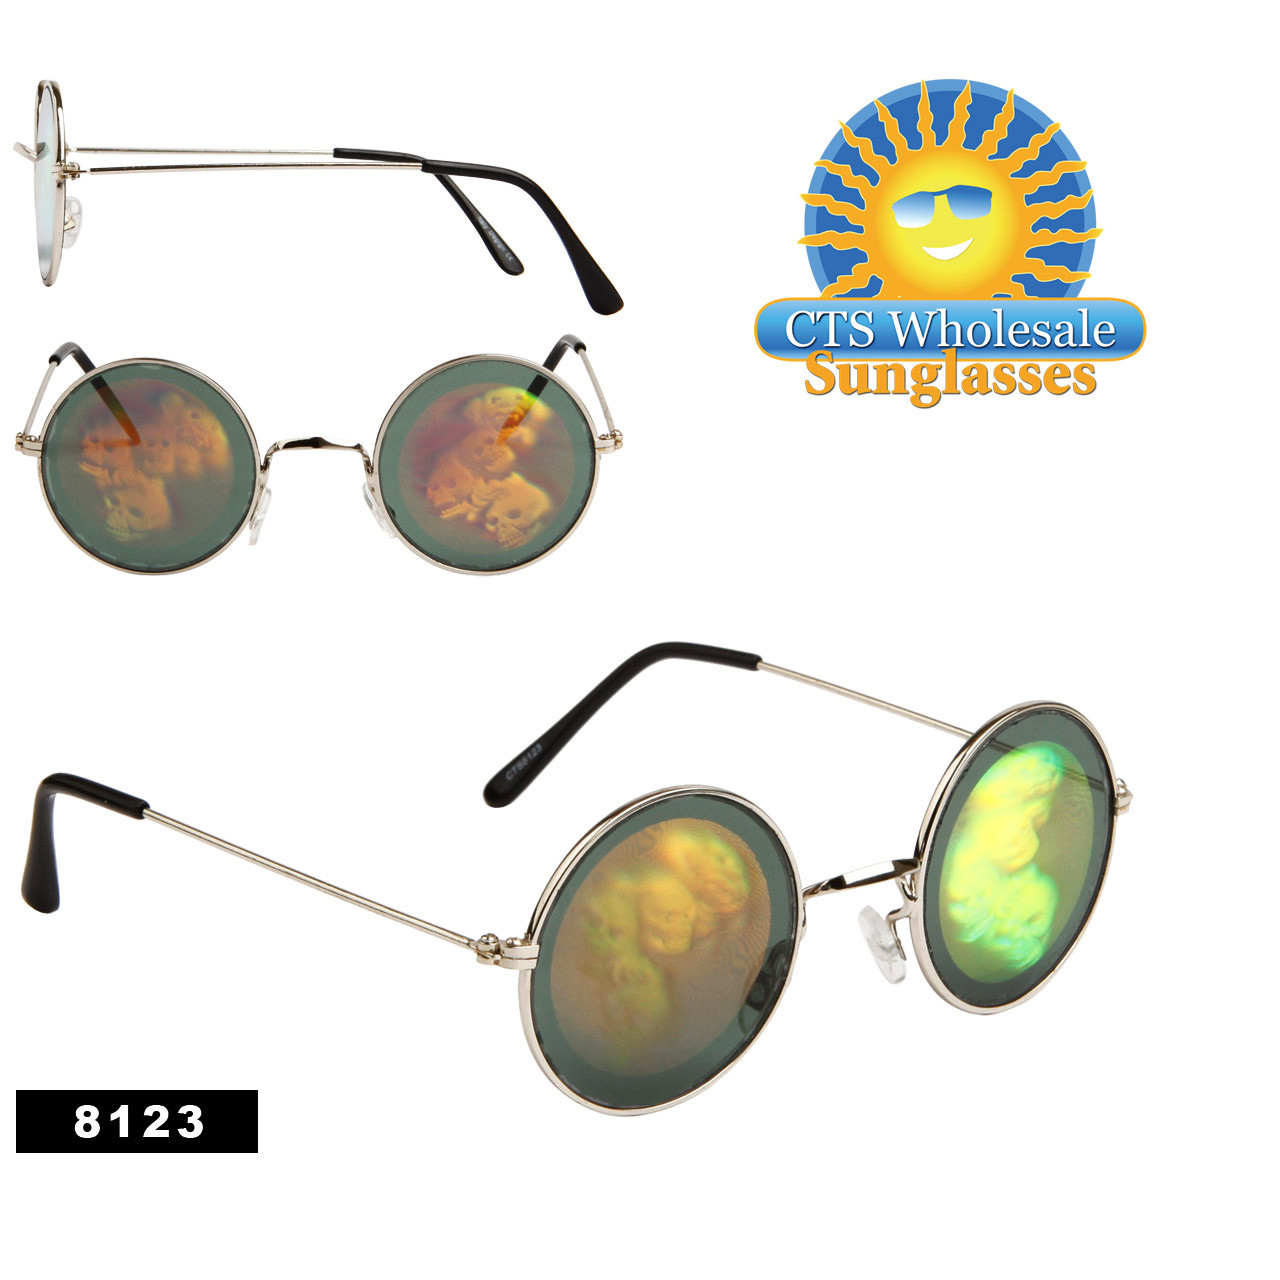 Skulls Hologram Sunglasses Wholesale - 8123